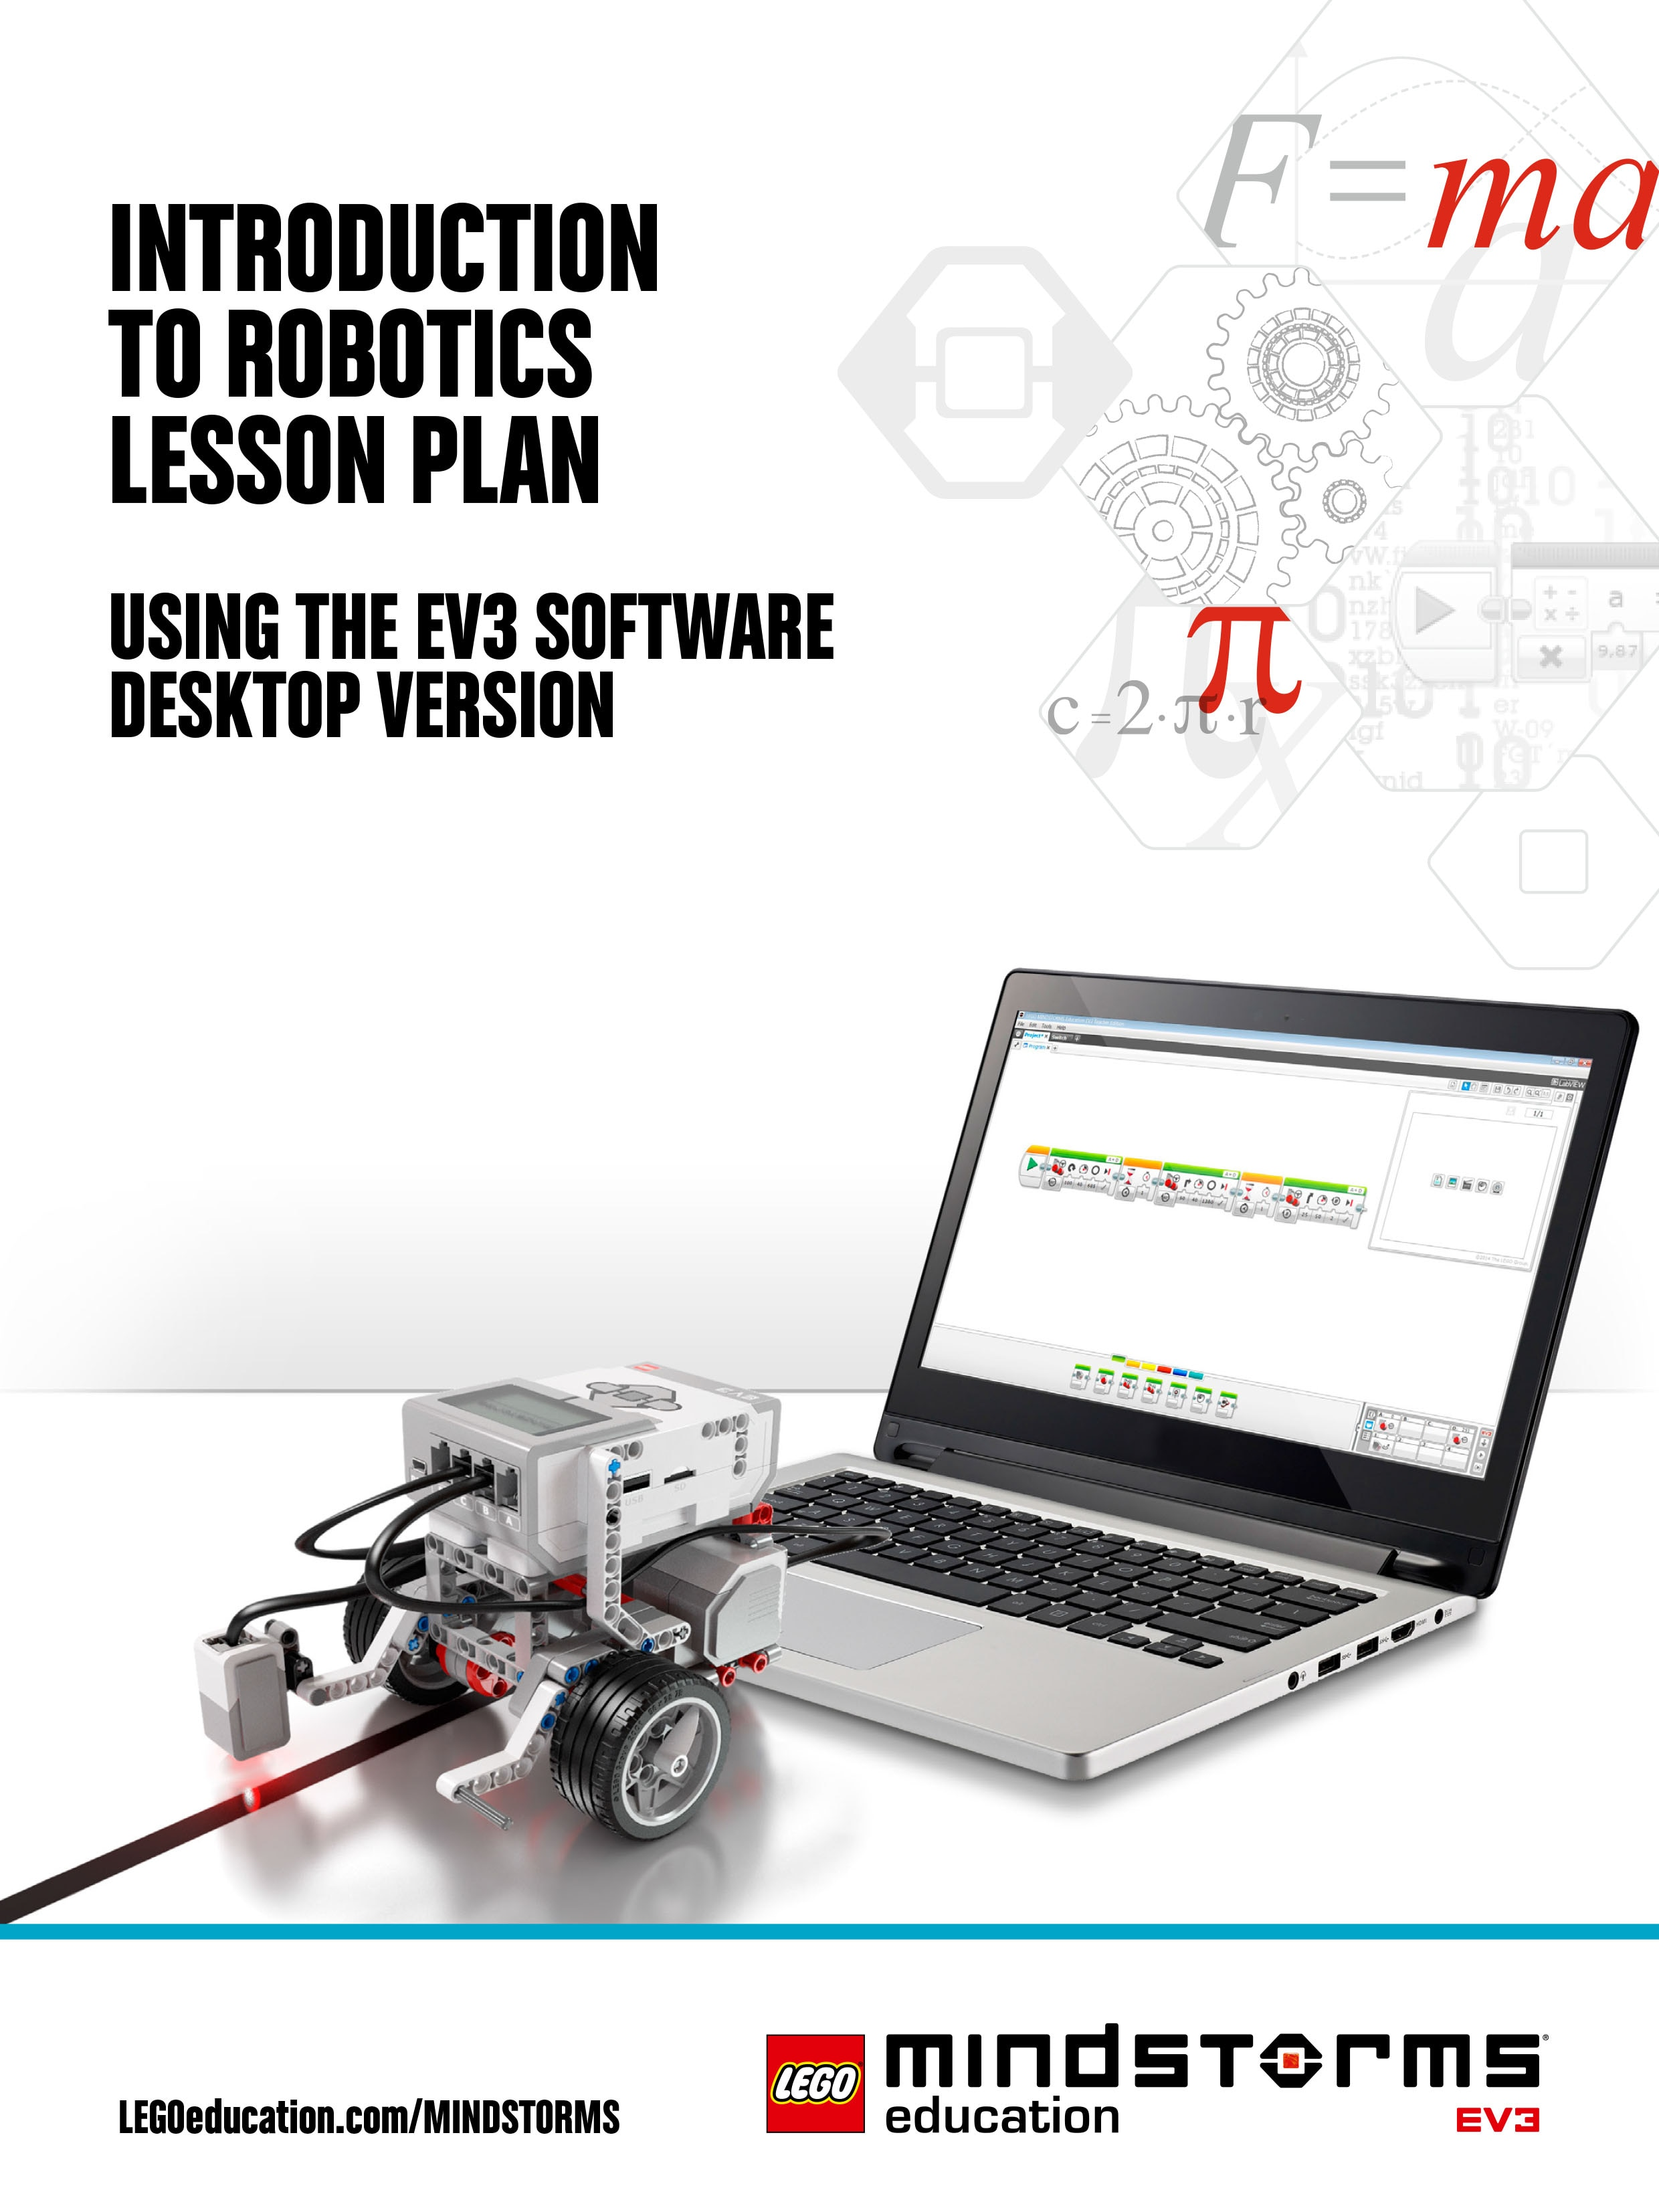 MINDSTORMS EV3 Introduction to Robotics (desktop)